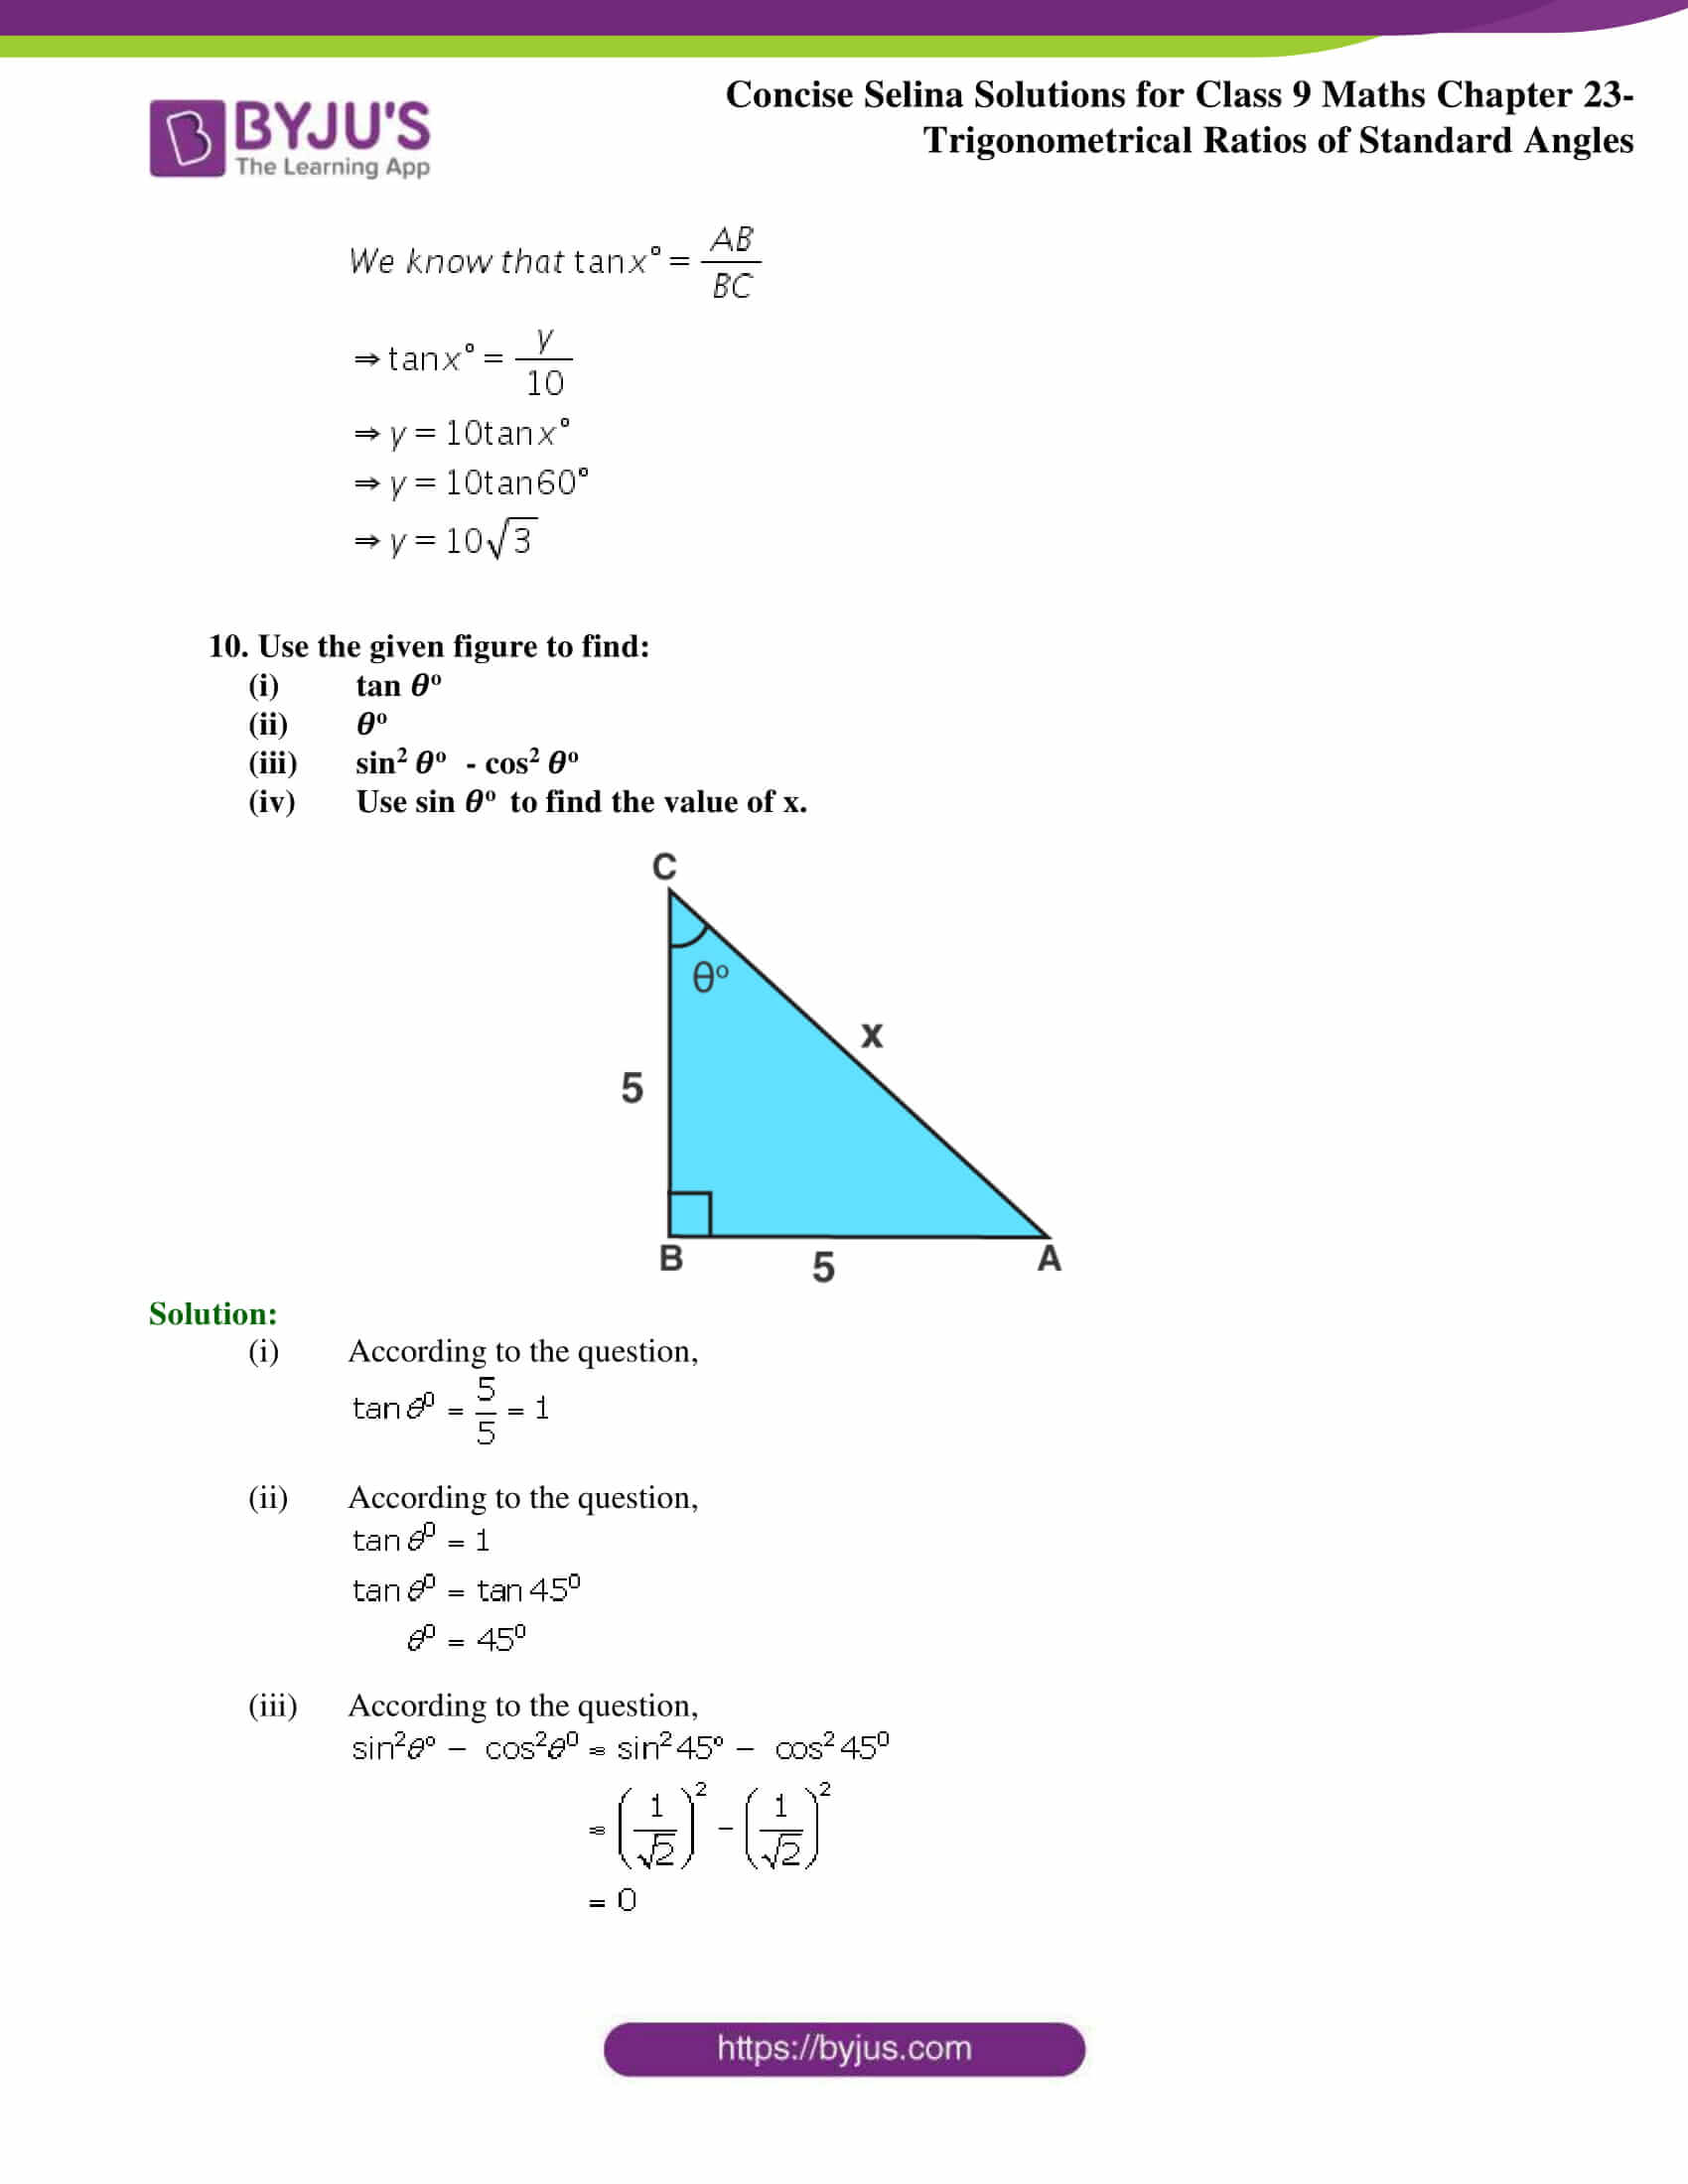 Concise Selina Solutions Class 9 Maths Chapter 23 part 28